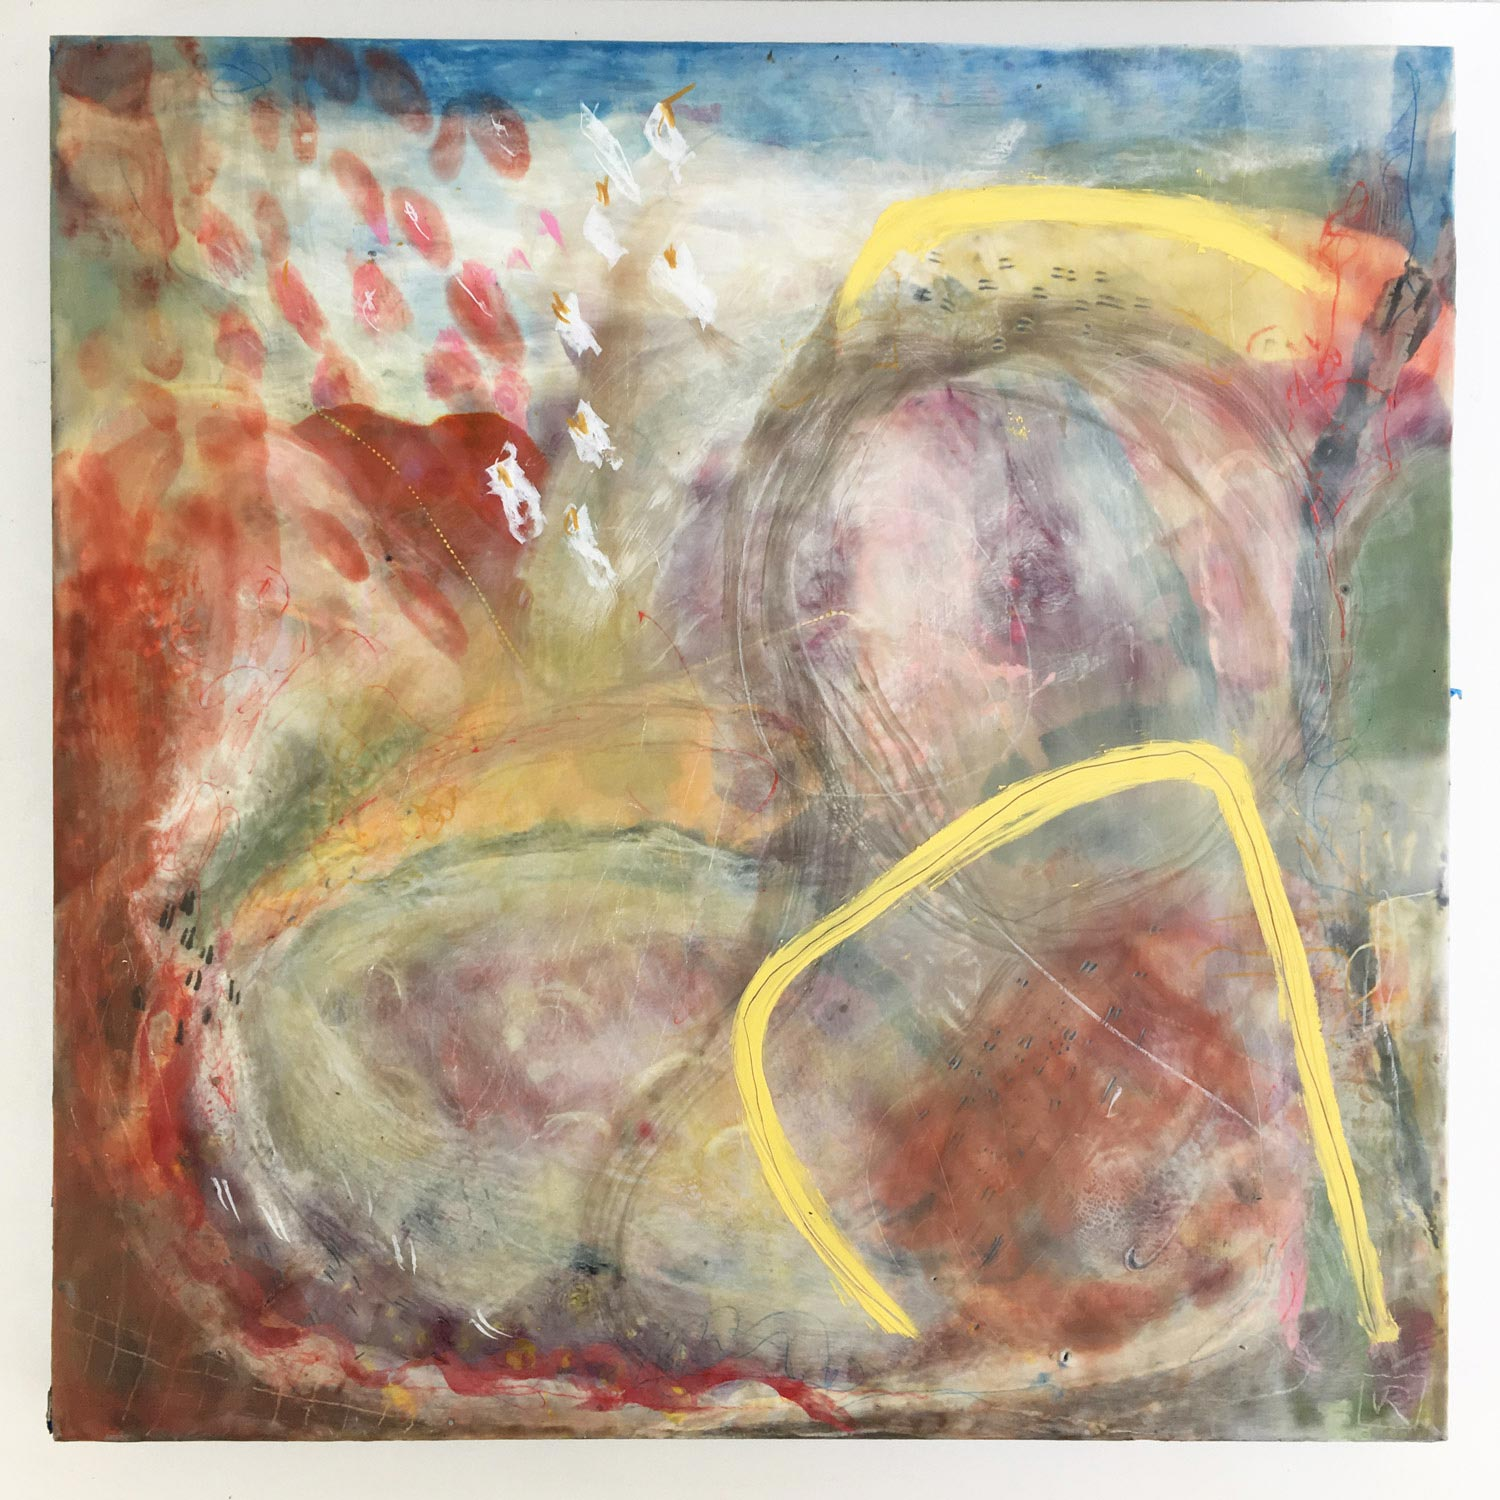 Pitter Patter  $950 Encaustic and mixed media on cradled birch panel, 50 x 50cm   Enquire